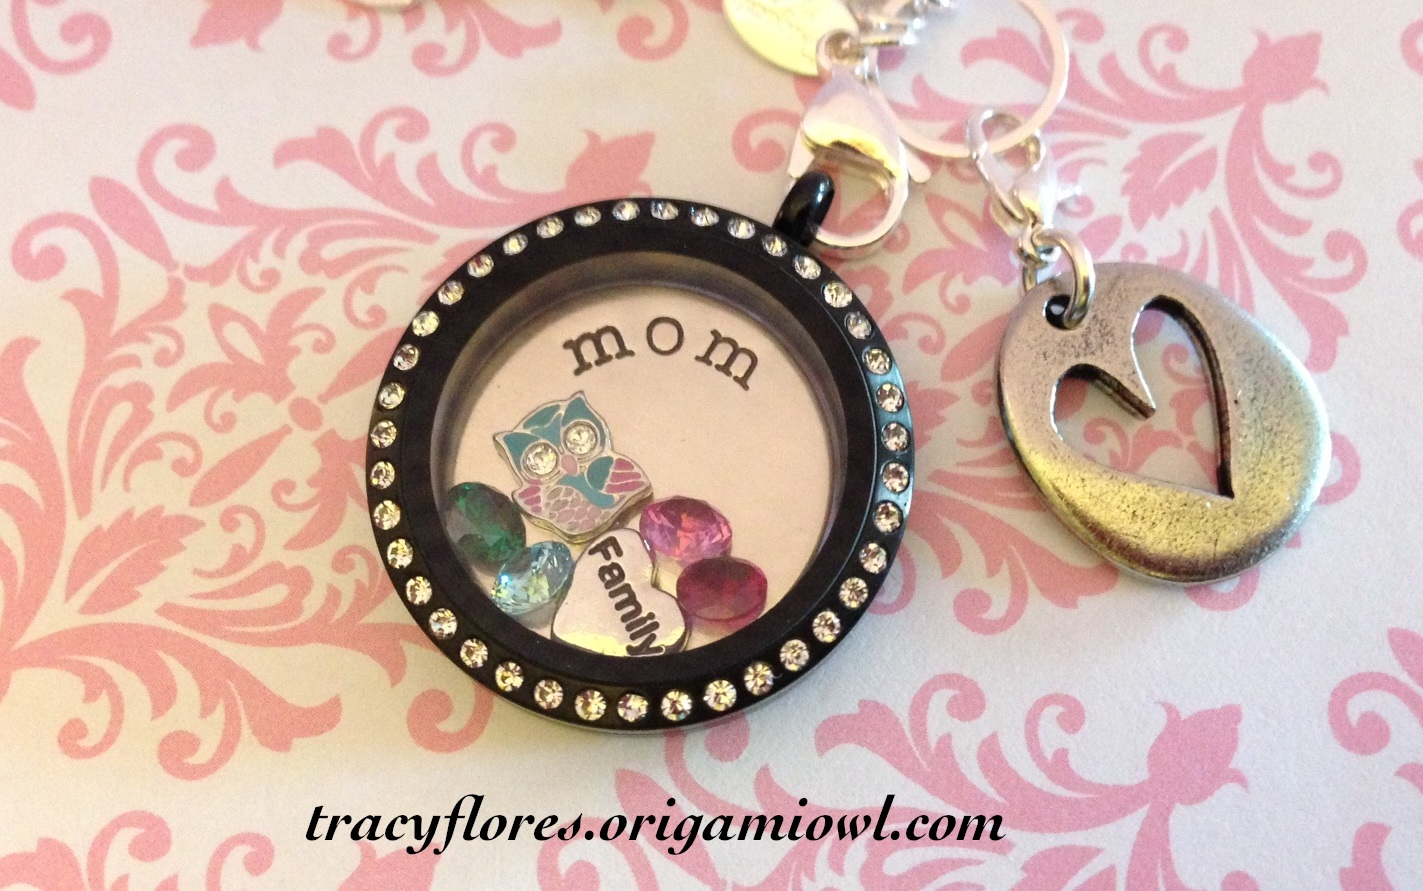 Origami owl lockets by tracy origami owl has also re released their mini lockets these are sooo cute and perfect for any age lovely with one little stone or to celebrate a momentous jeuxipadfo Image collections